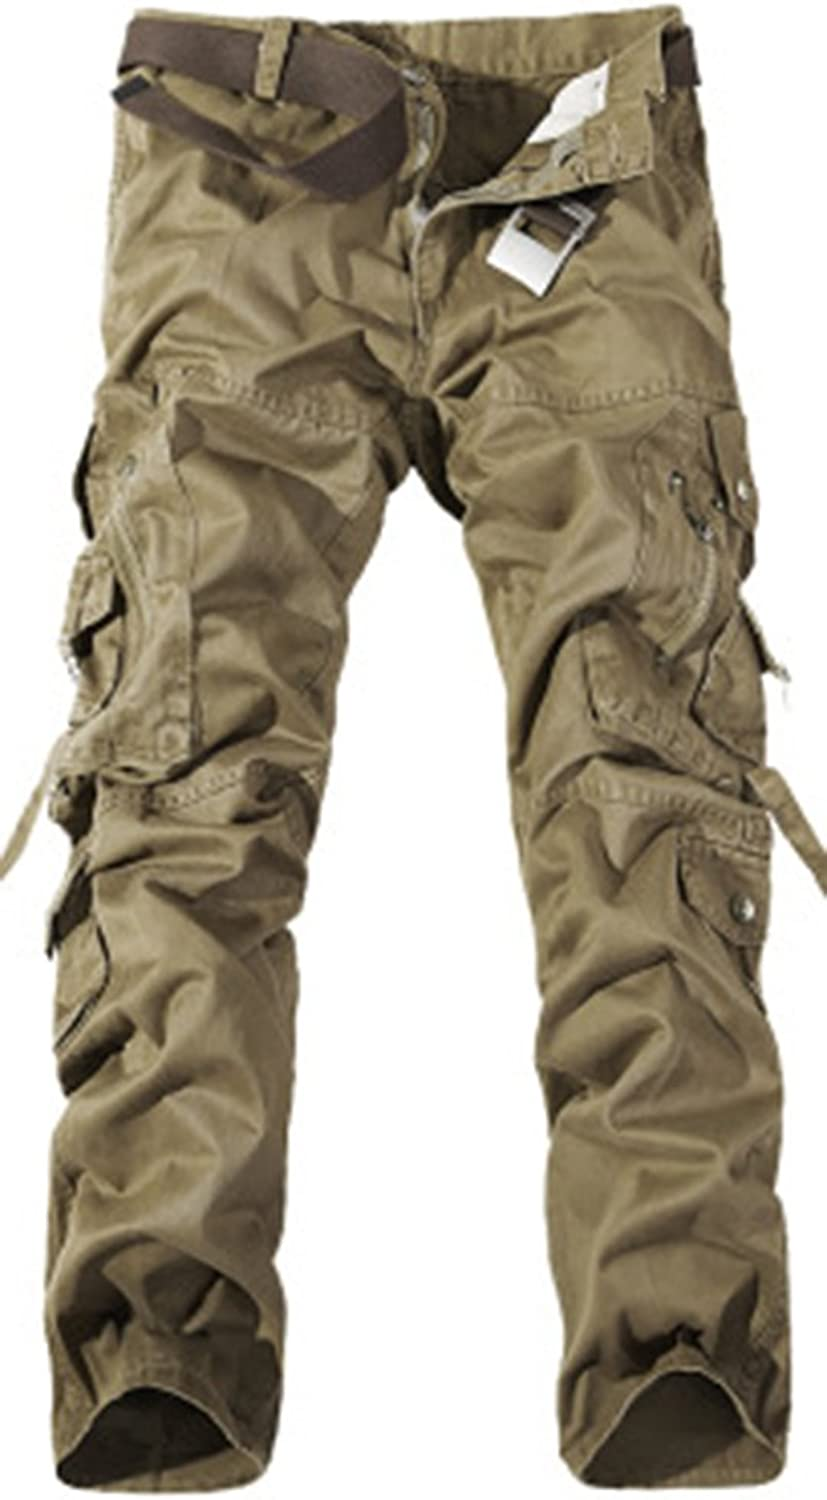 AbelWay Men's Casual Cotton Twill Cargo Pants Multi Pockets Camo Combat Outdoor Hiking Wear Work Trousers